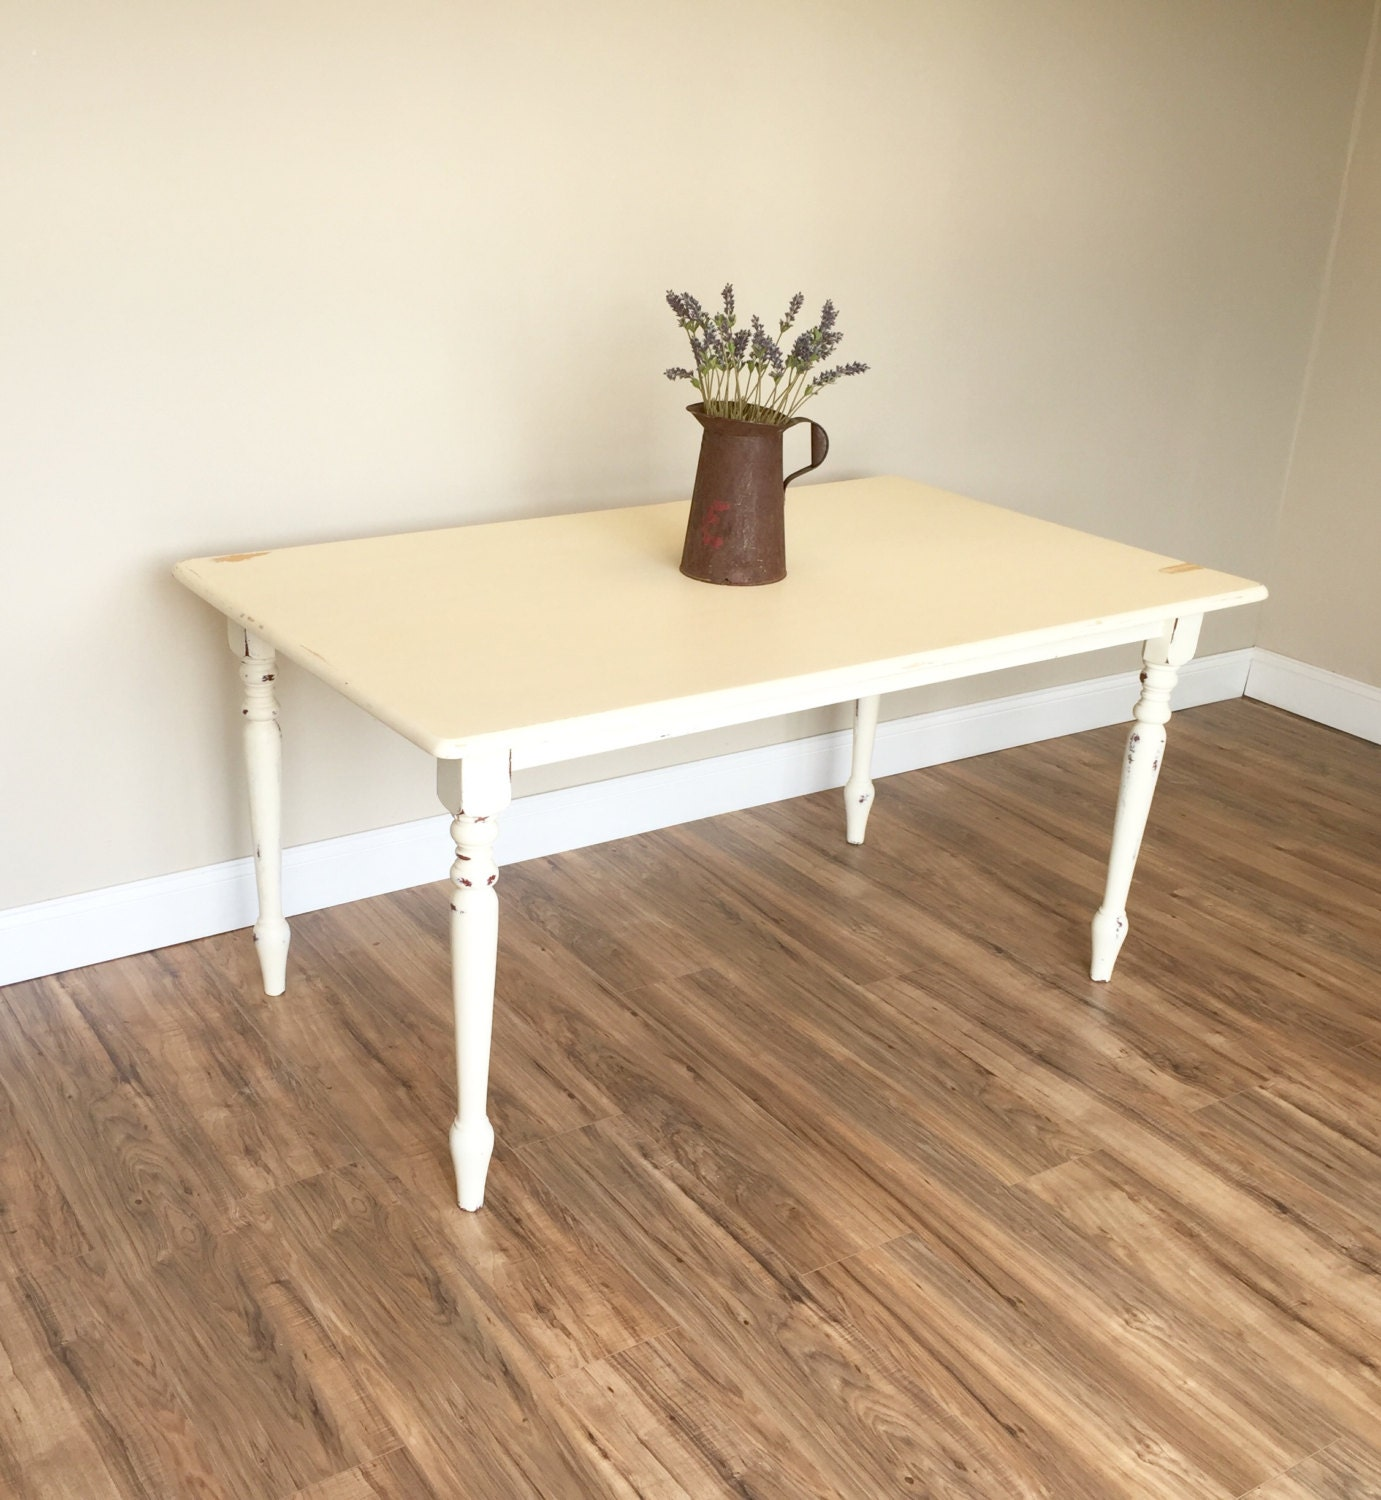 distressed kitchen table small white dining table country cottage furniture farmhouse kitchen table small farmhouse table - Distressed White Kitchen Table